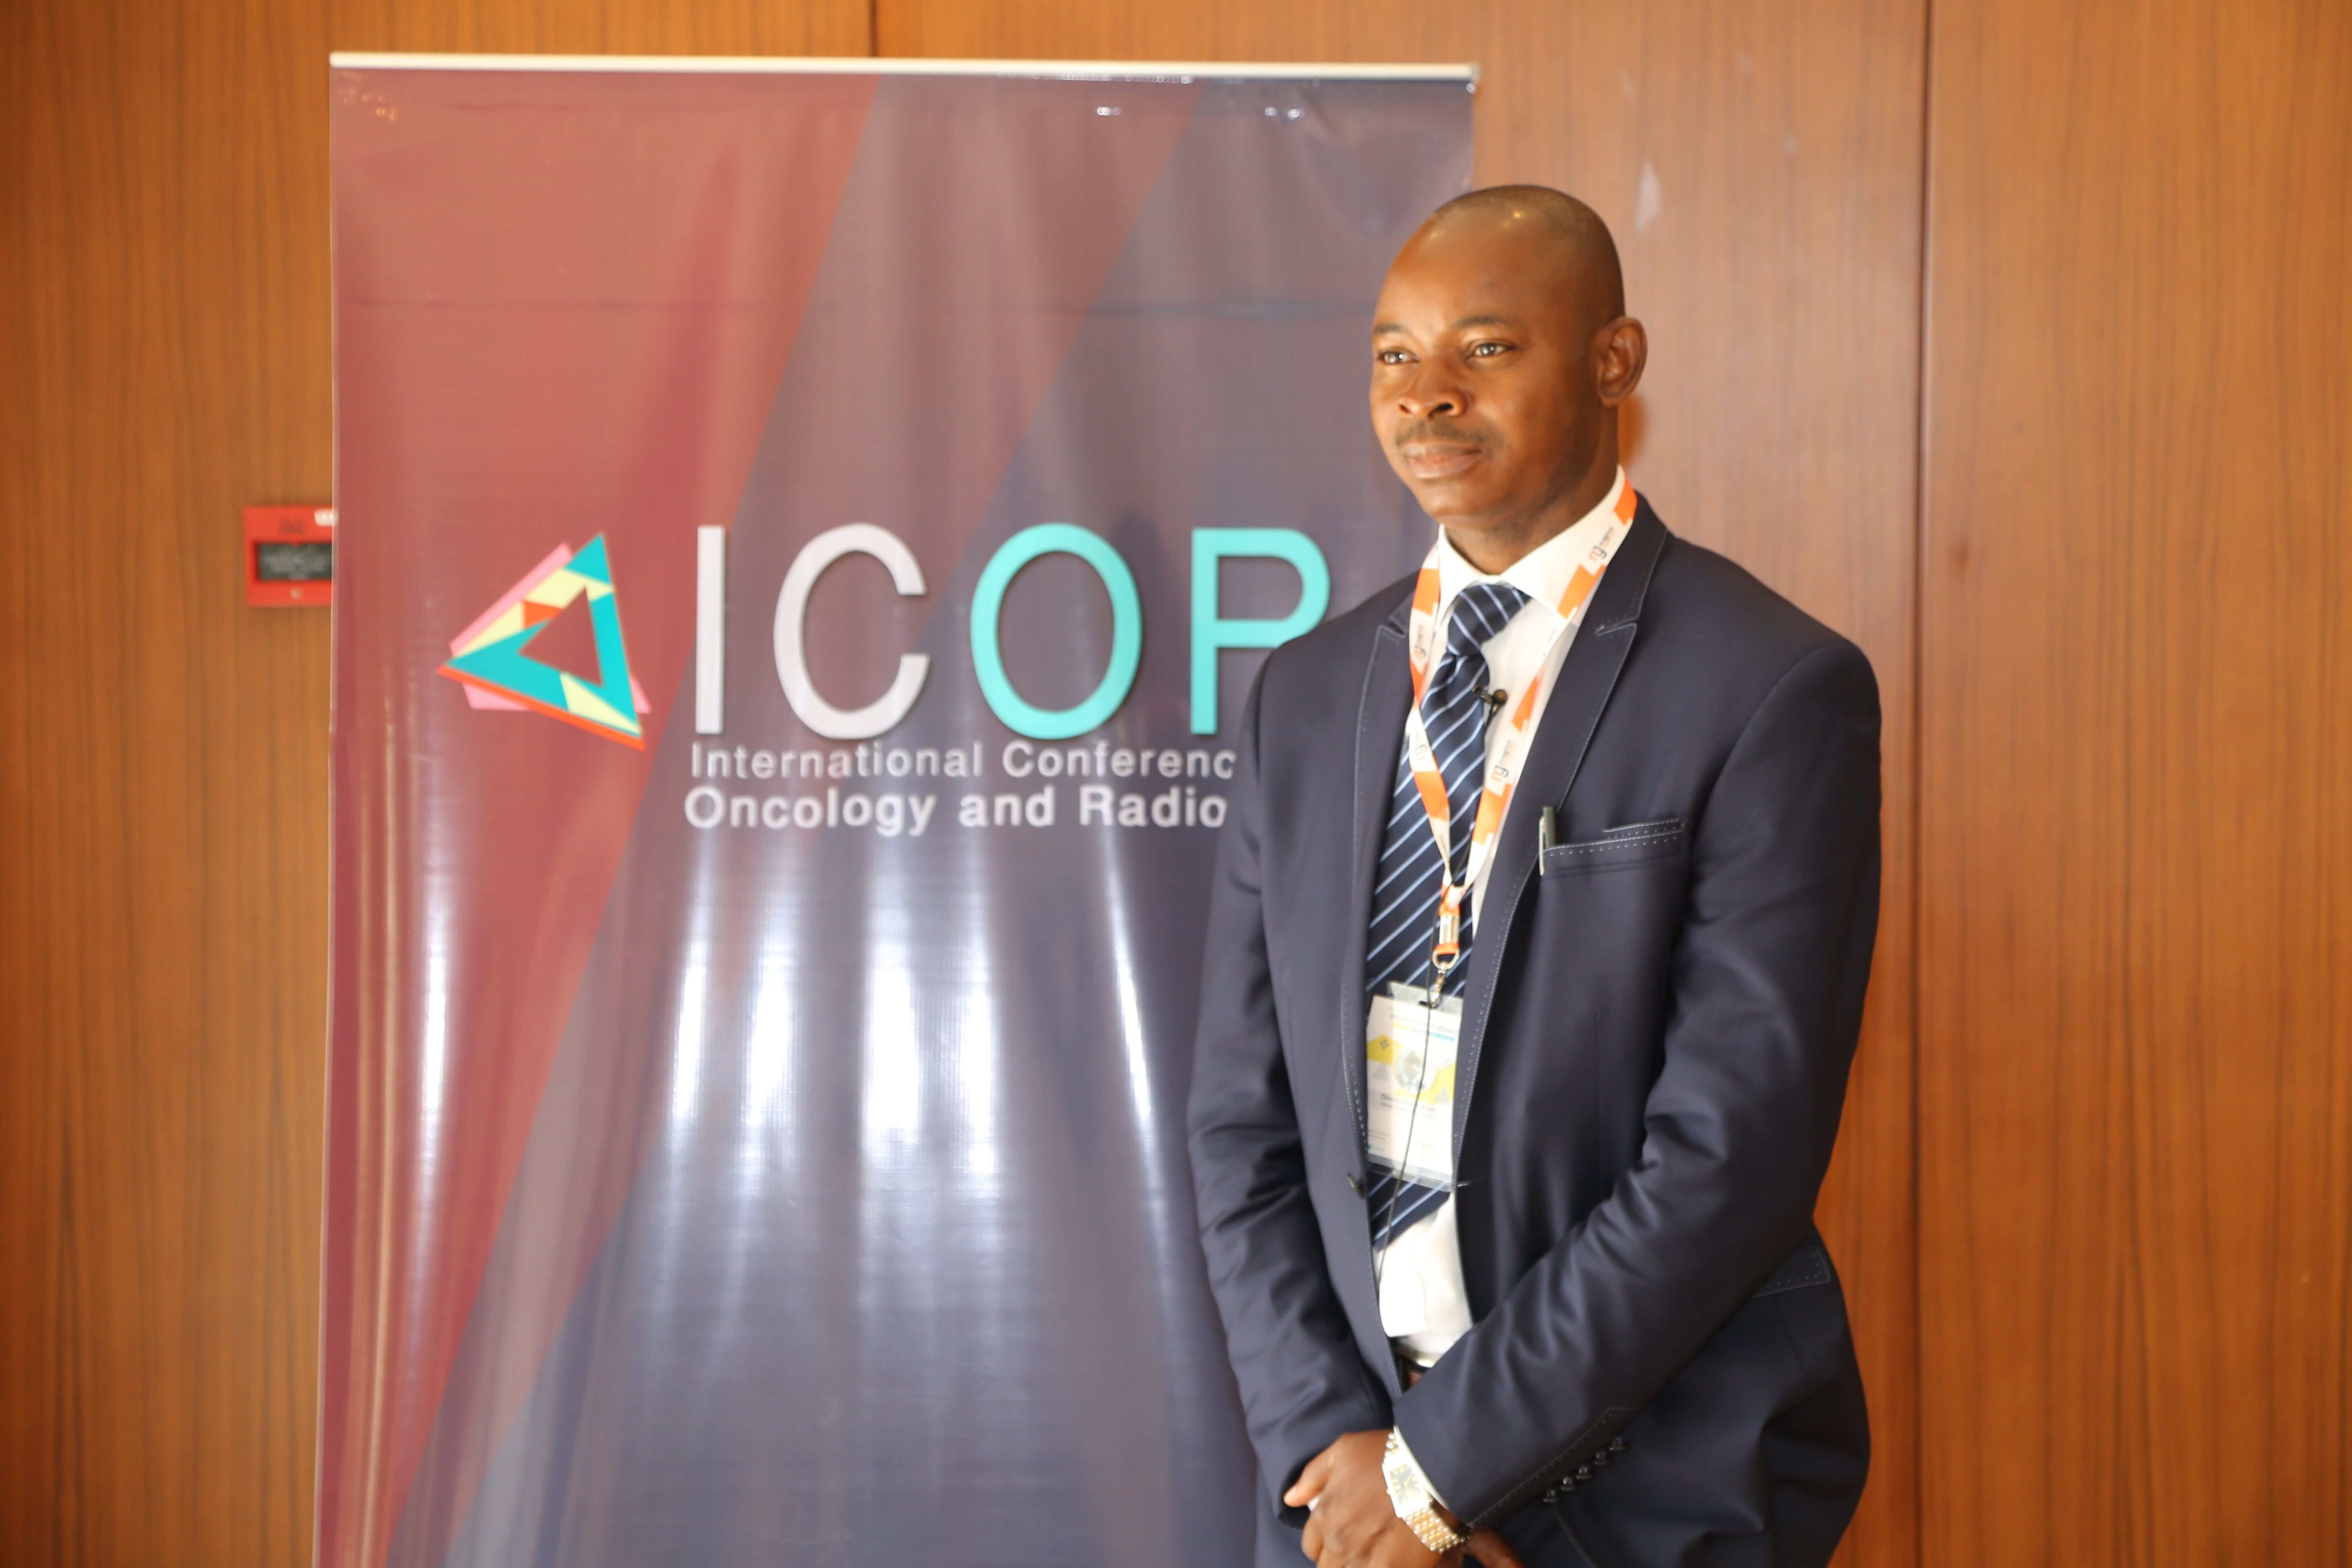 Cancer research conferences - Dr. Chinedu Simeon Aruah